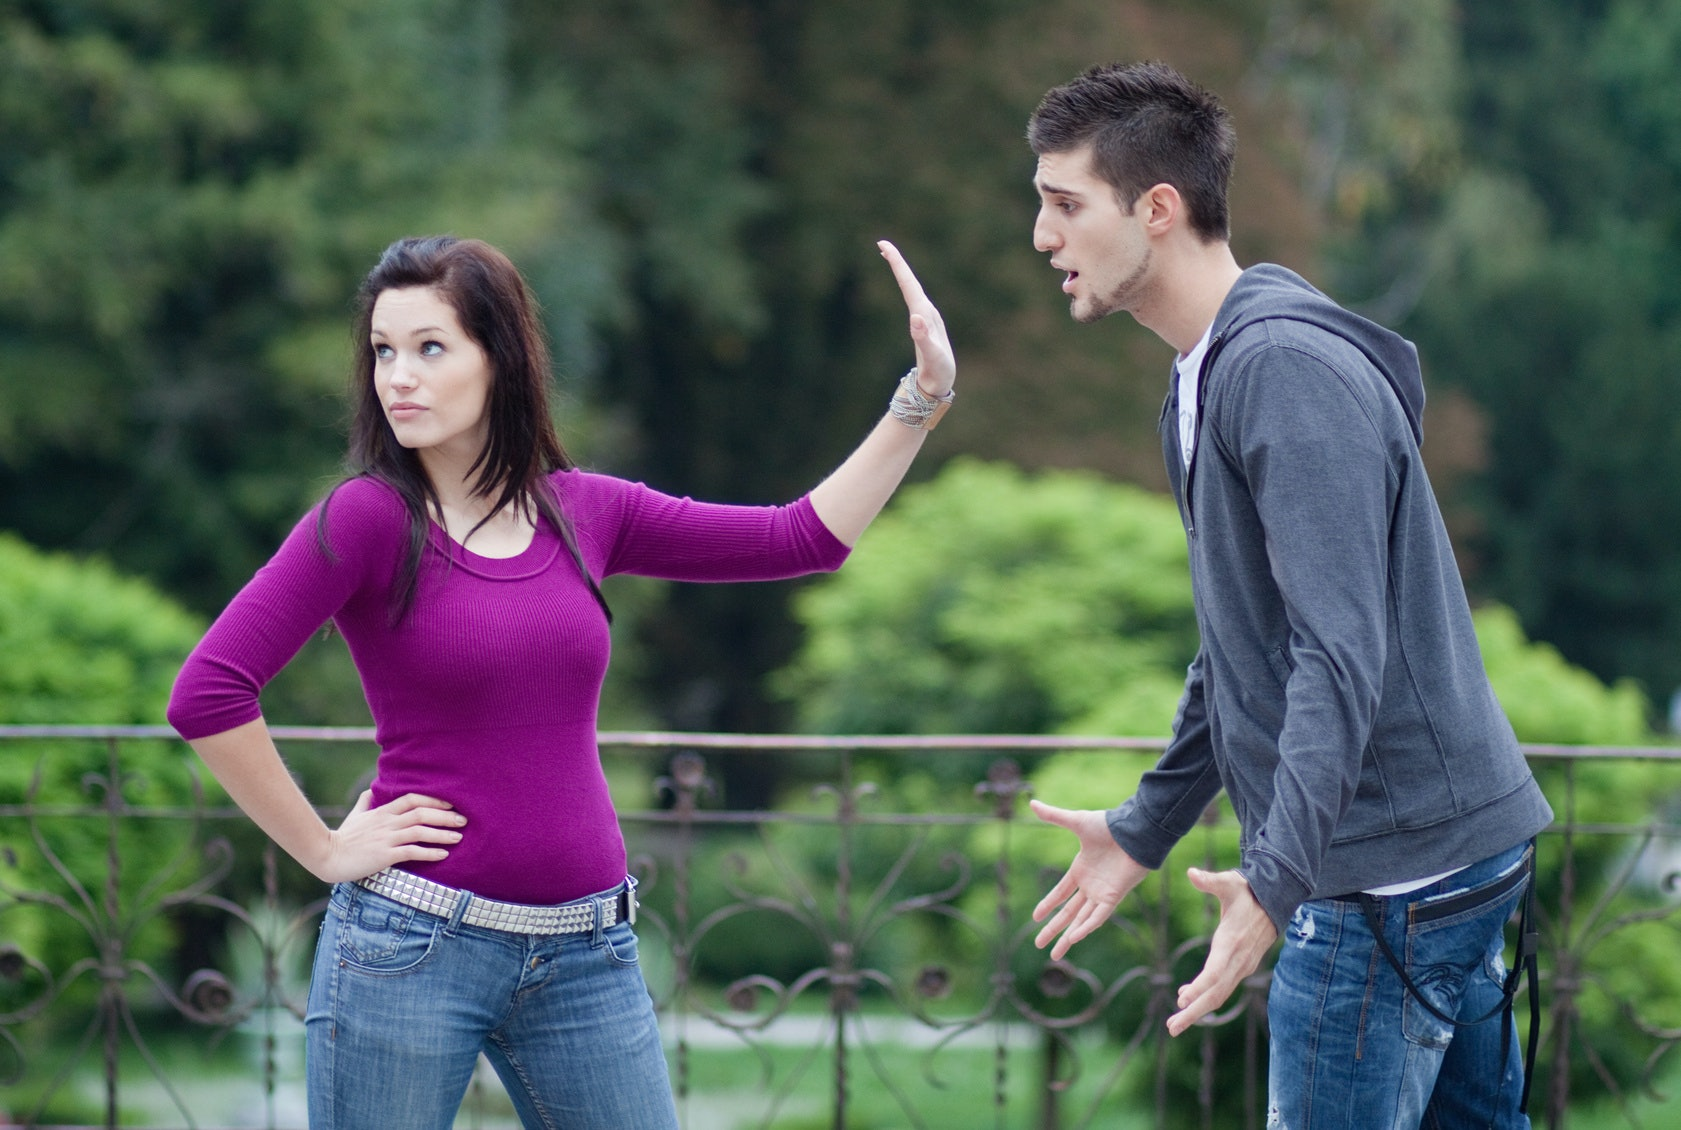 9 Things to Never Say to Your Significant Other